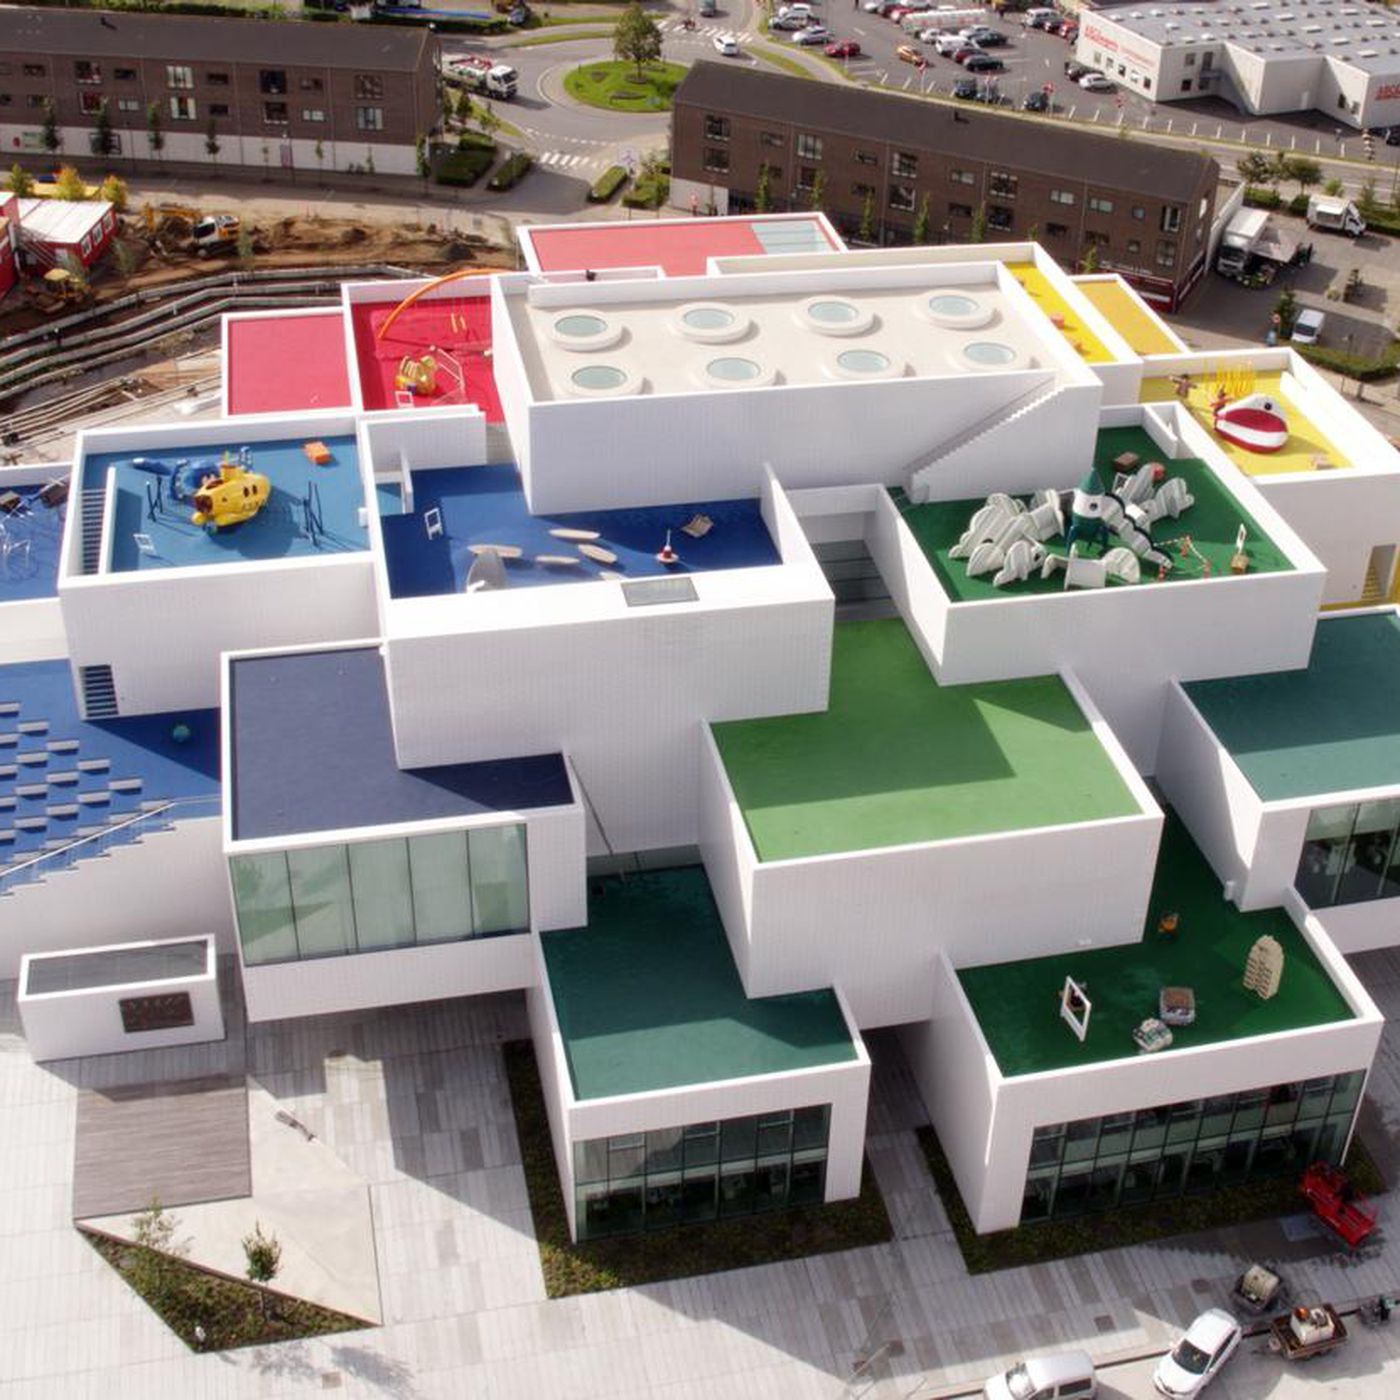 Lego House A Giant Playhouse Dubbed The Home Of Brick Is Now Open Verge